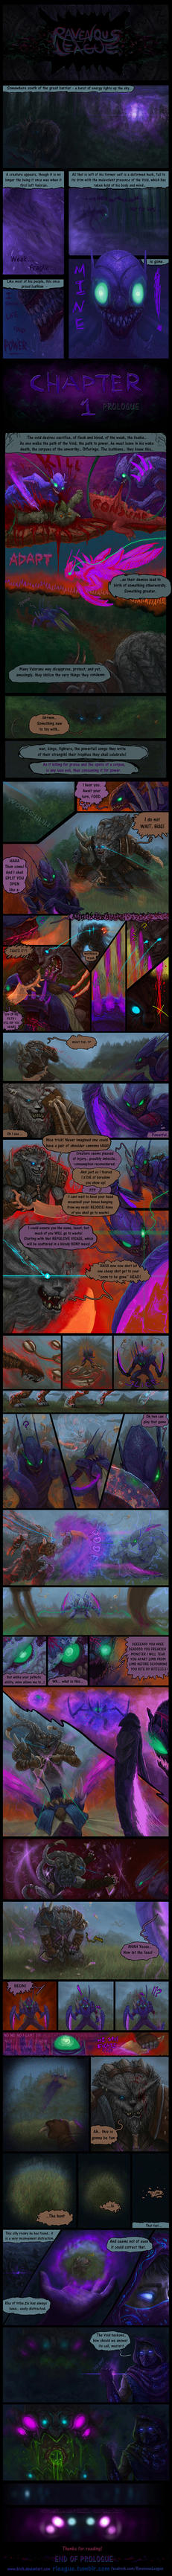 Ravenous Chapter 1 - Prologue by HiViH